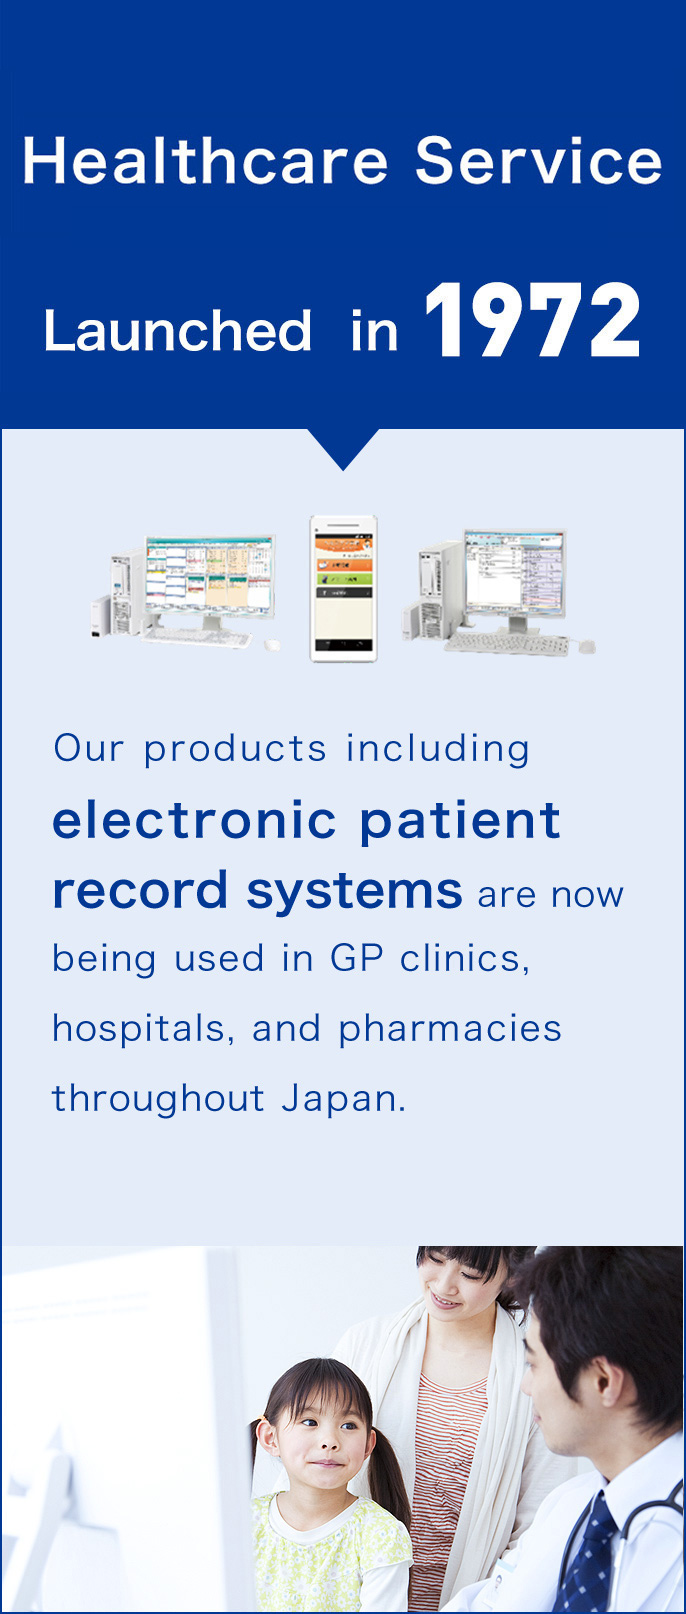 Healthcare Service, Launched  in 1972. Our products including electronic patient record systems are now being used in GP clinics, hospitals, and pharmacies throughout Japan.